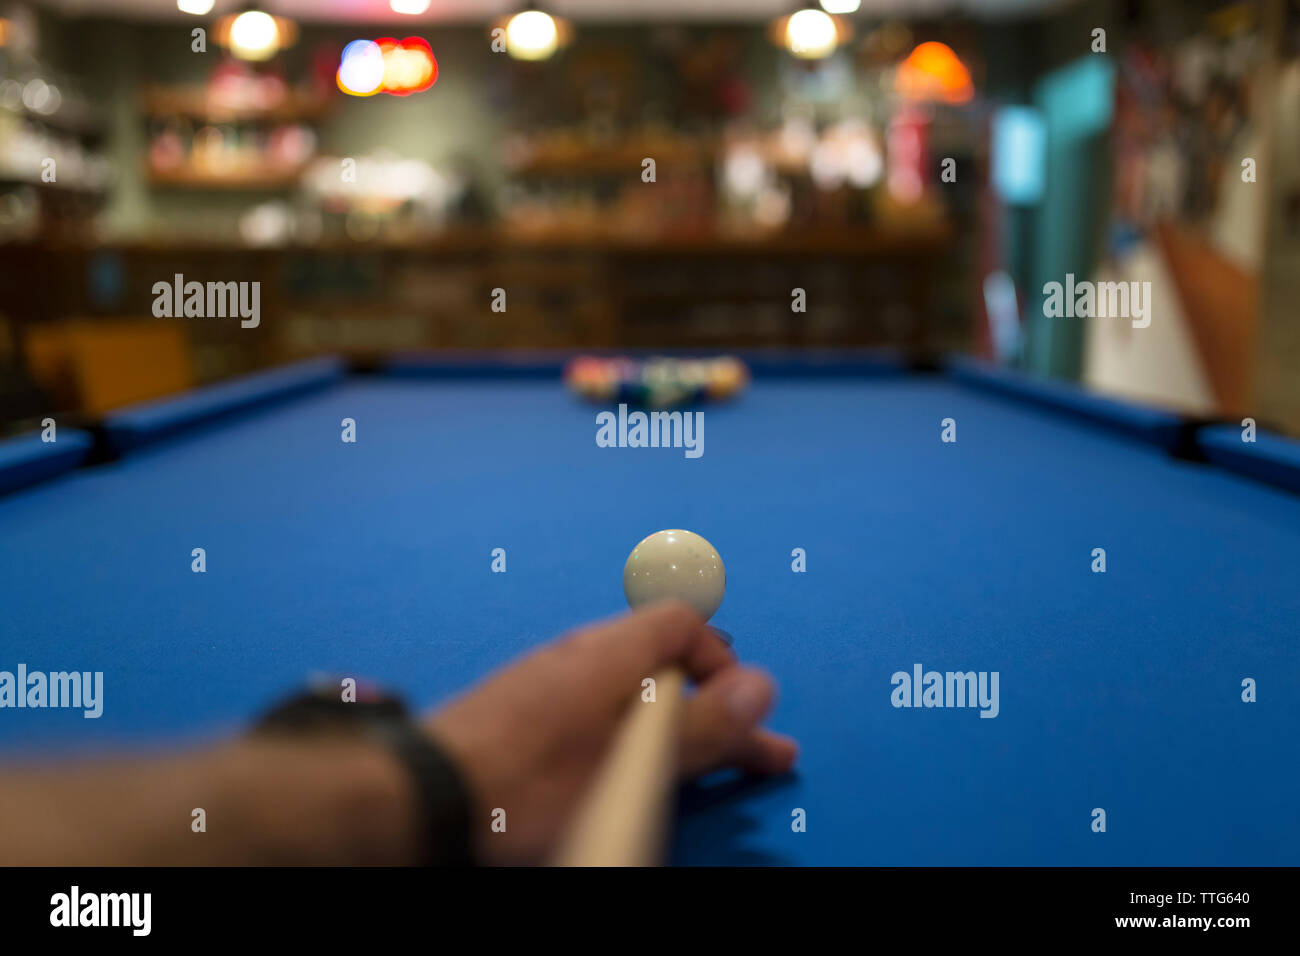 Cropped image of hand playing pool - Stock Image